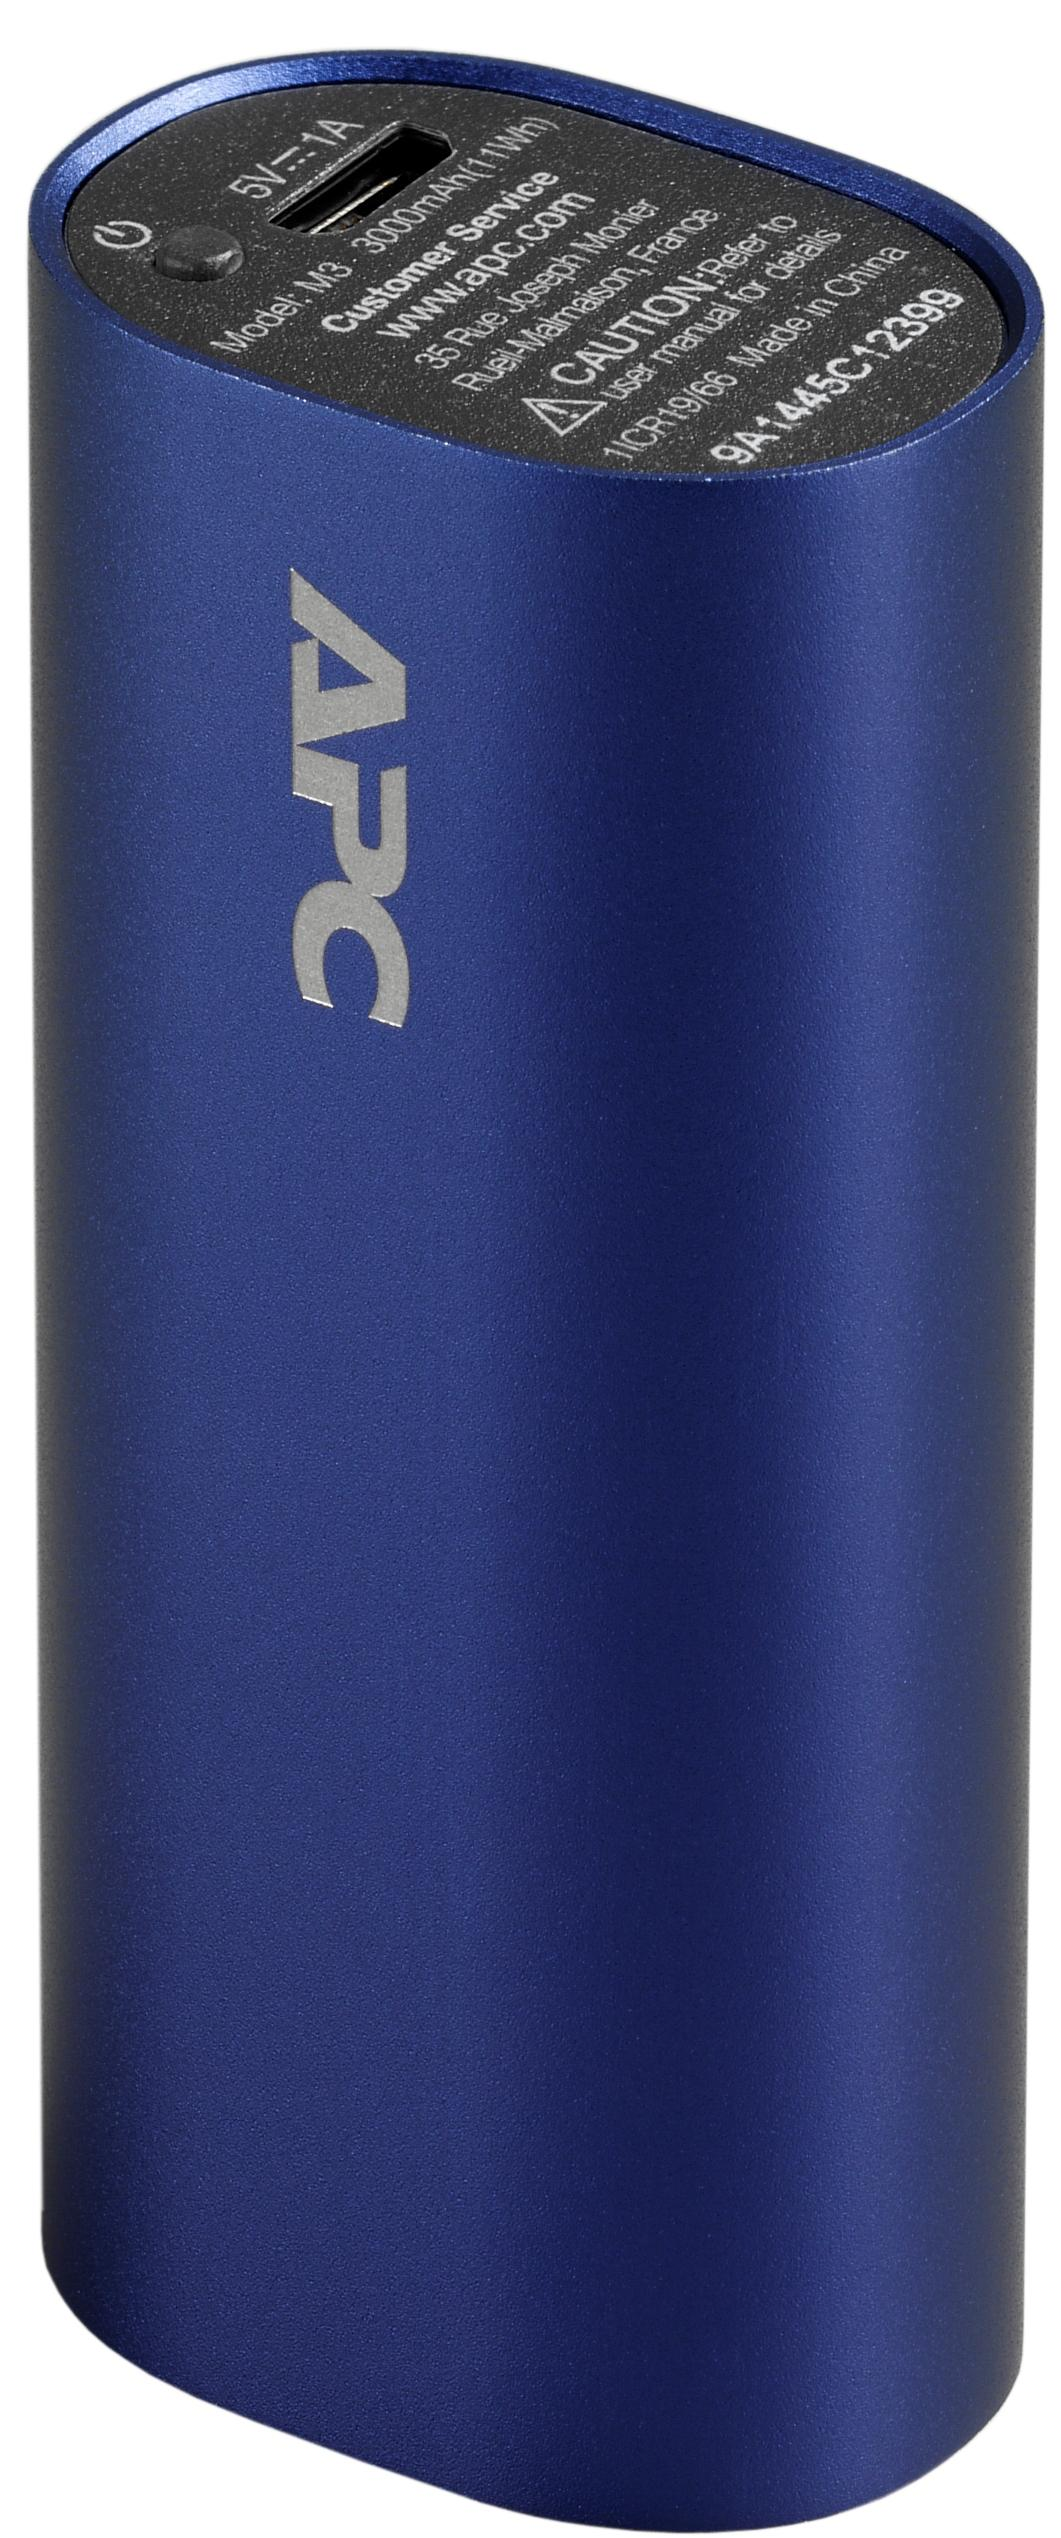 APC Mobile Power Pack, 3000mAh Li-ion cylinder, Blue Power Bank